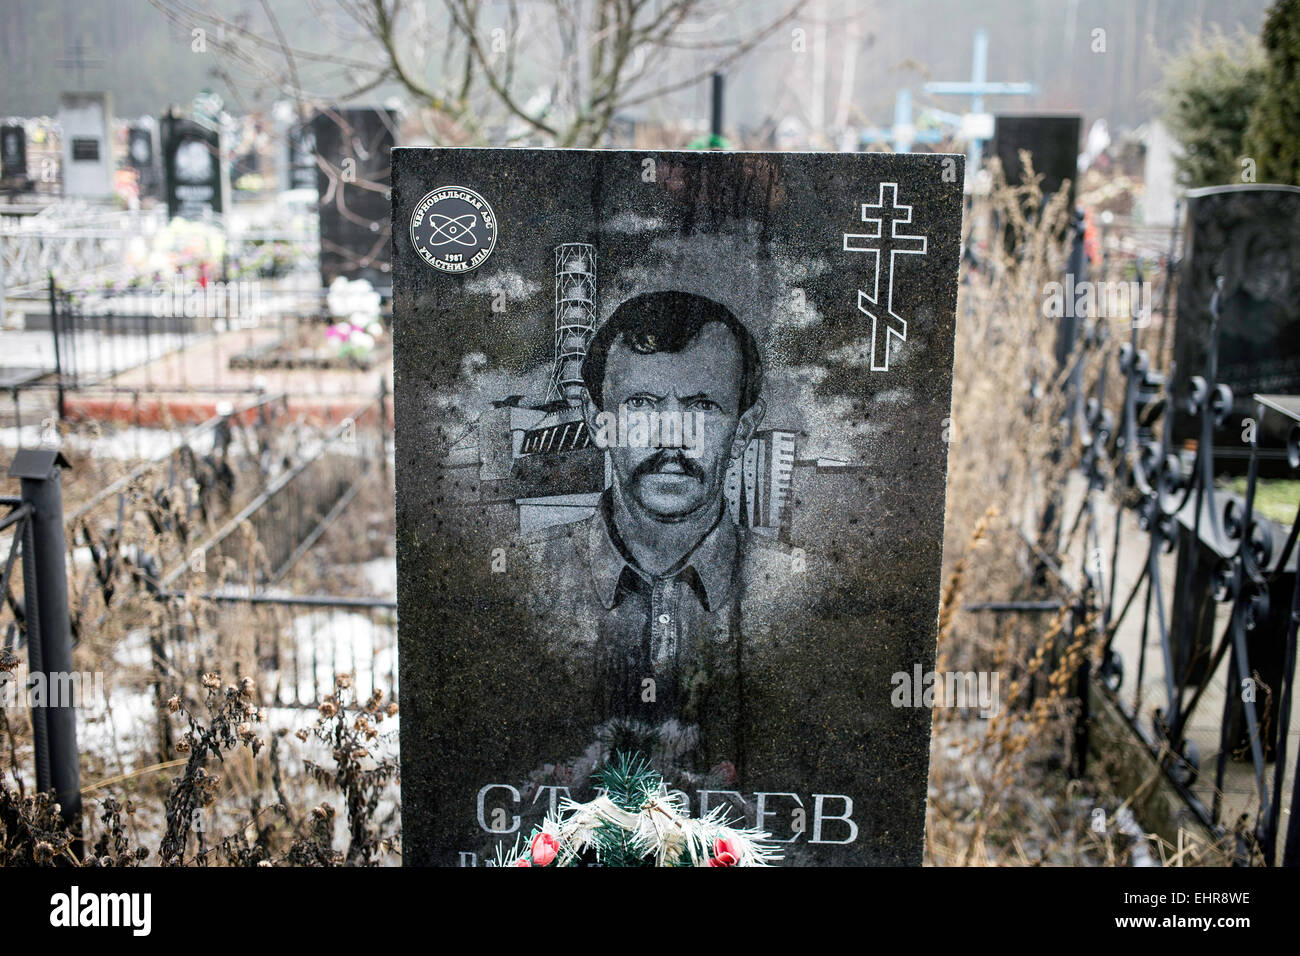 Cemetery of Slavutych, where most of the victims of the Chernobyl disaster are buried, mostly liquidators, who died - Stock Image